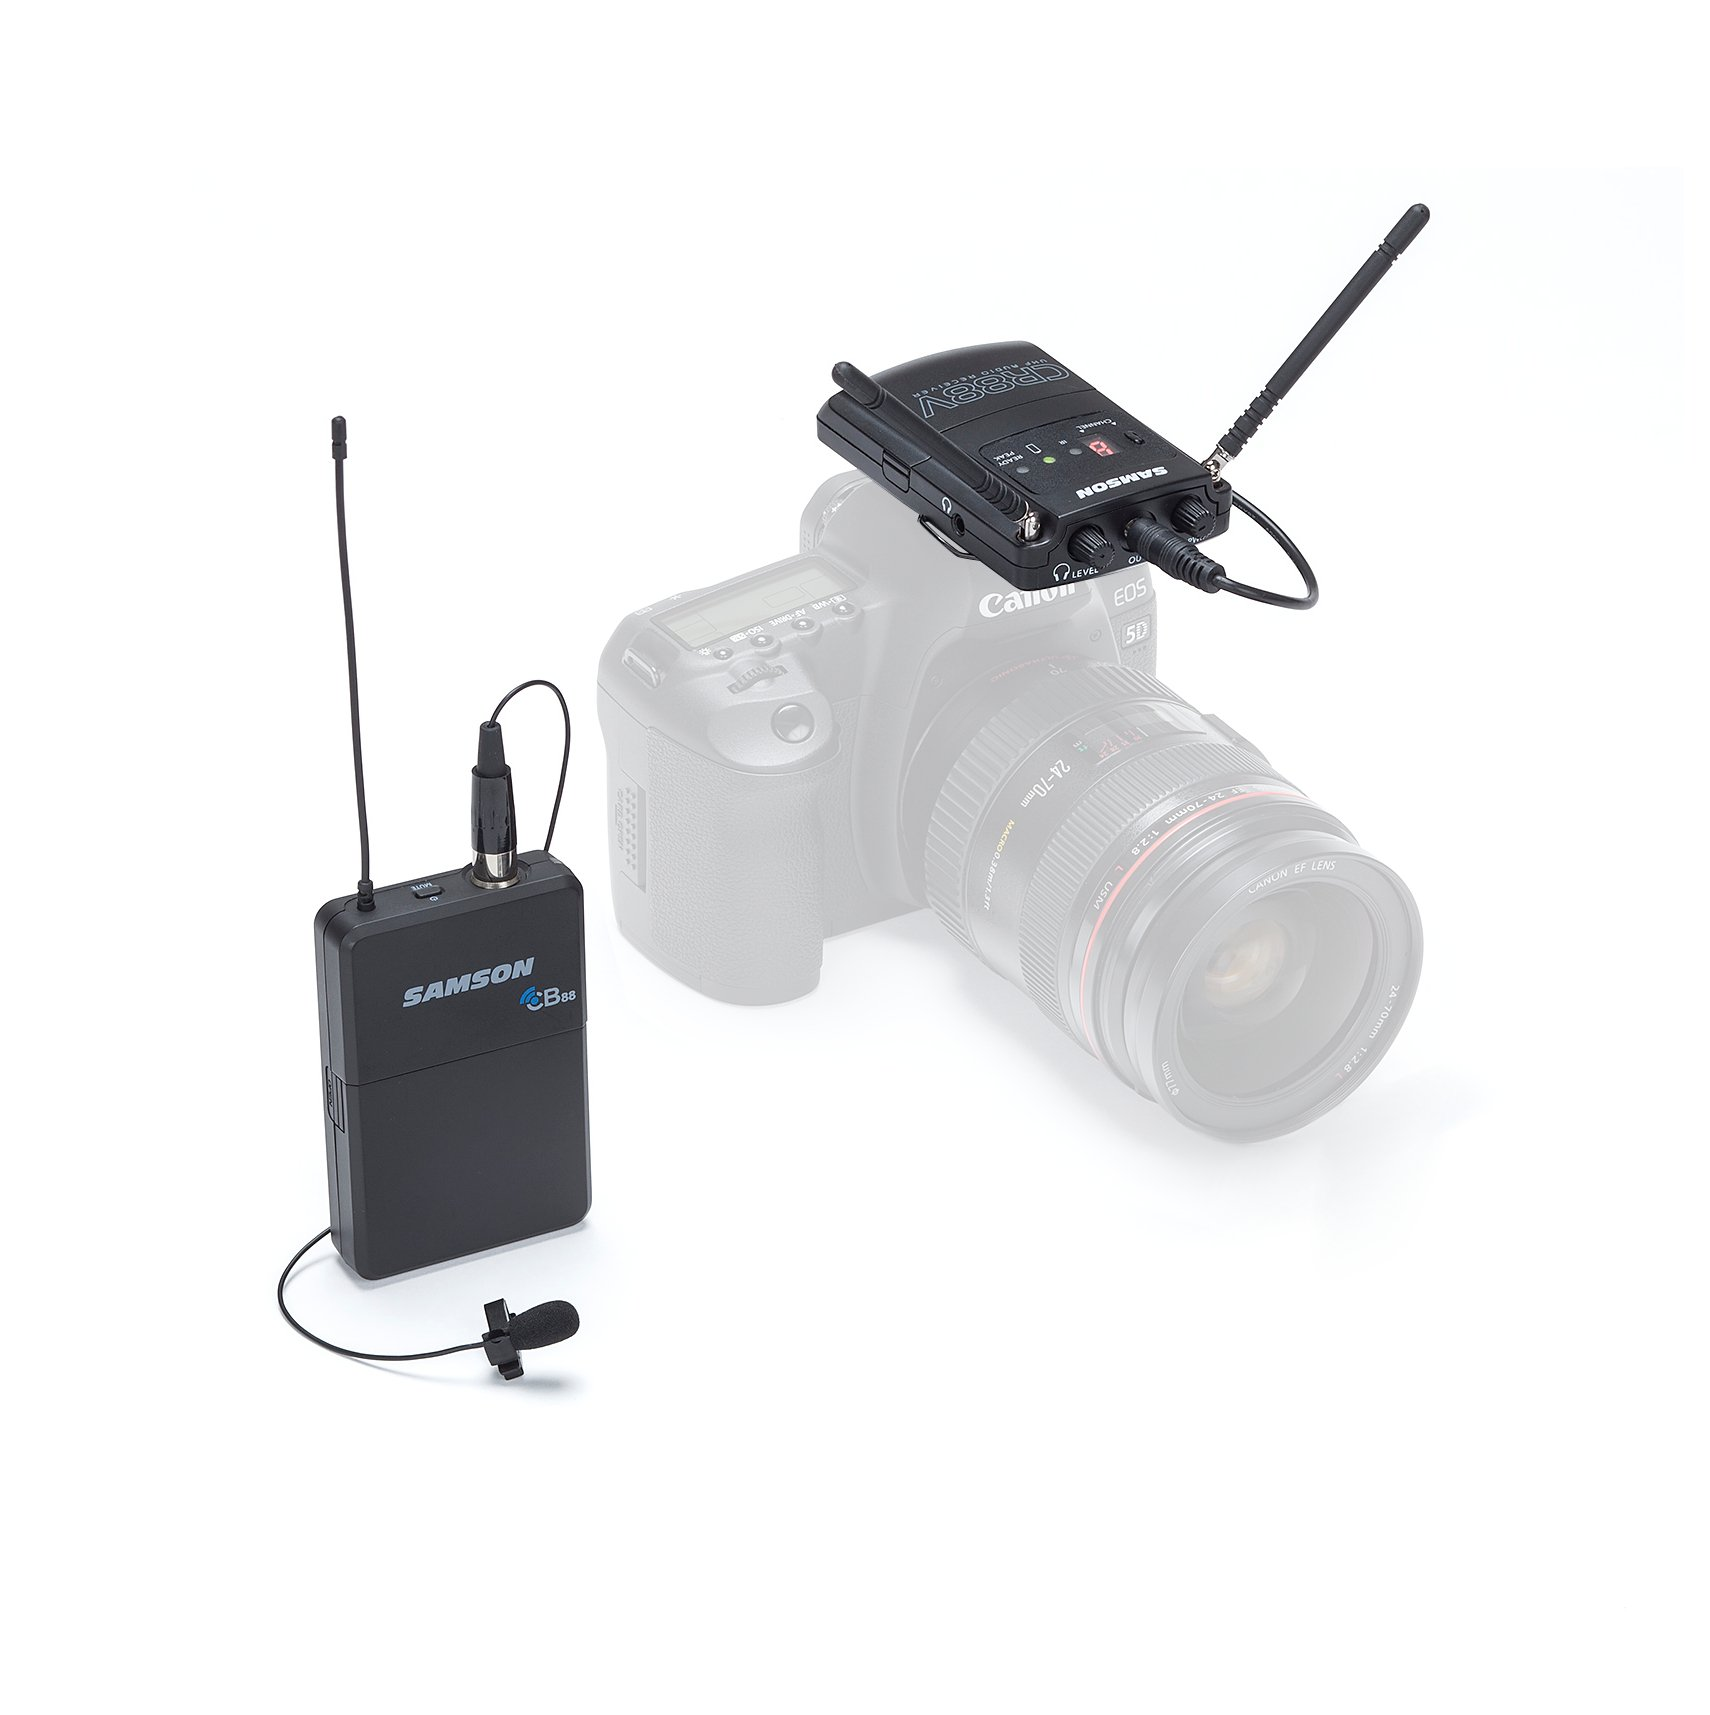 K Band Wireless Microphone System with LM10 Lavalier Microphone